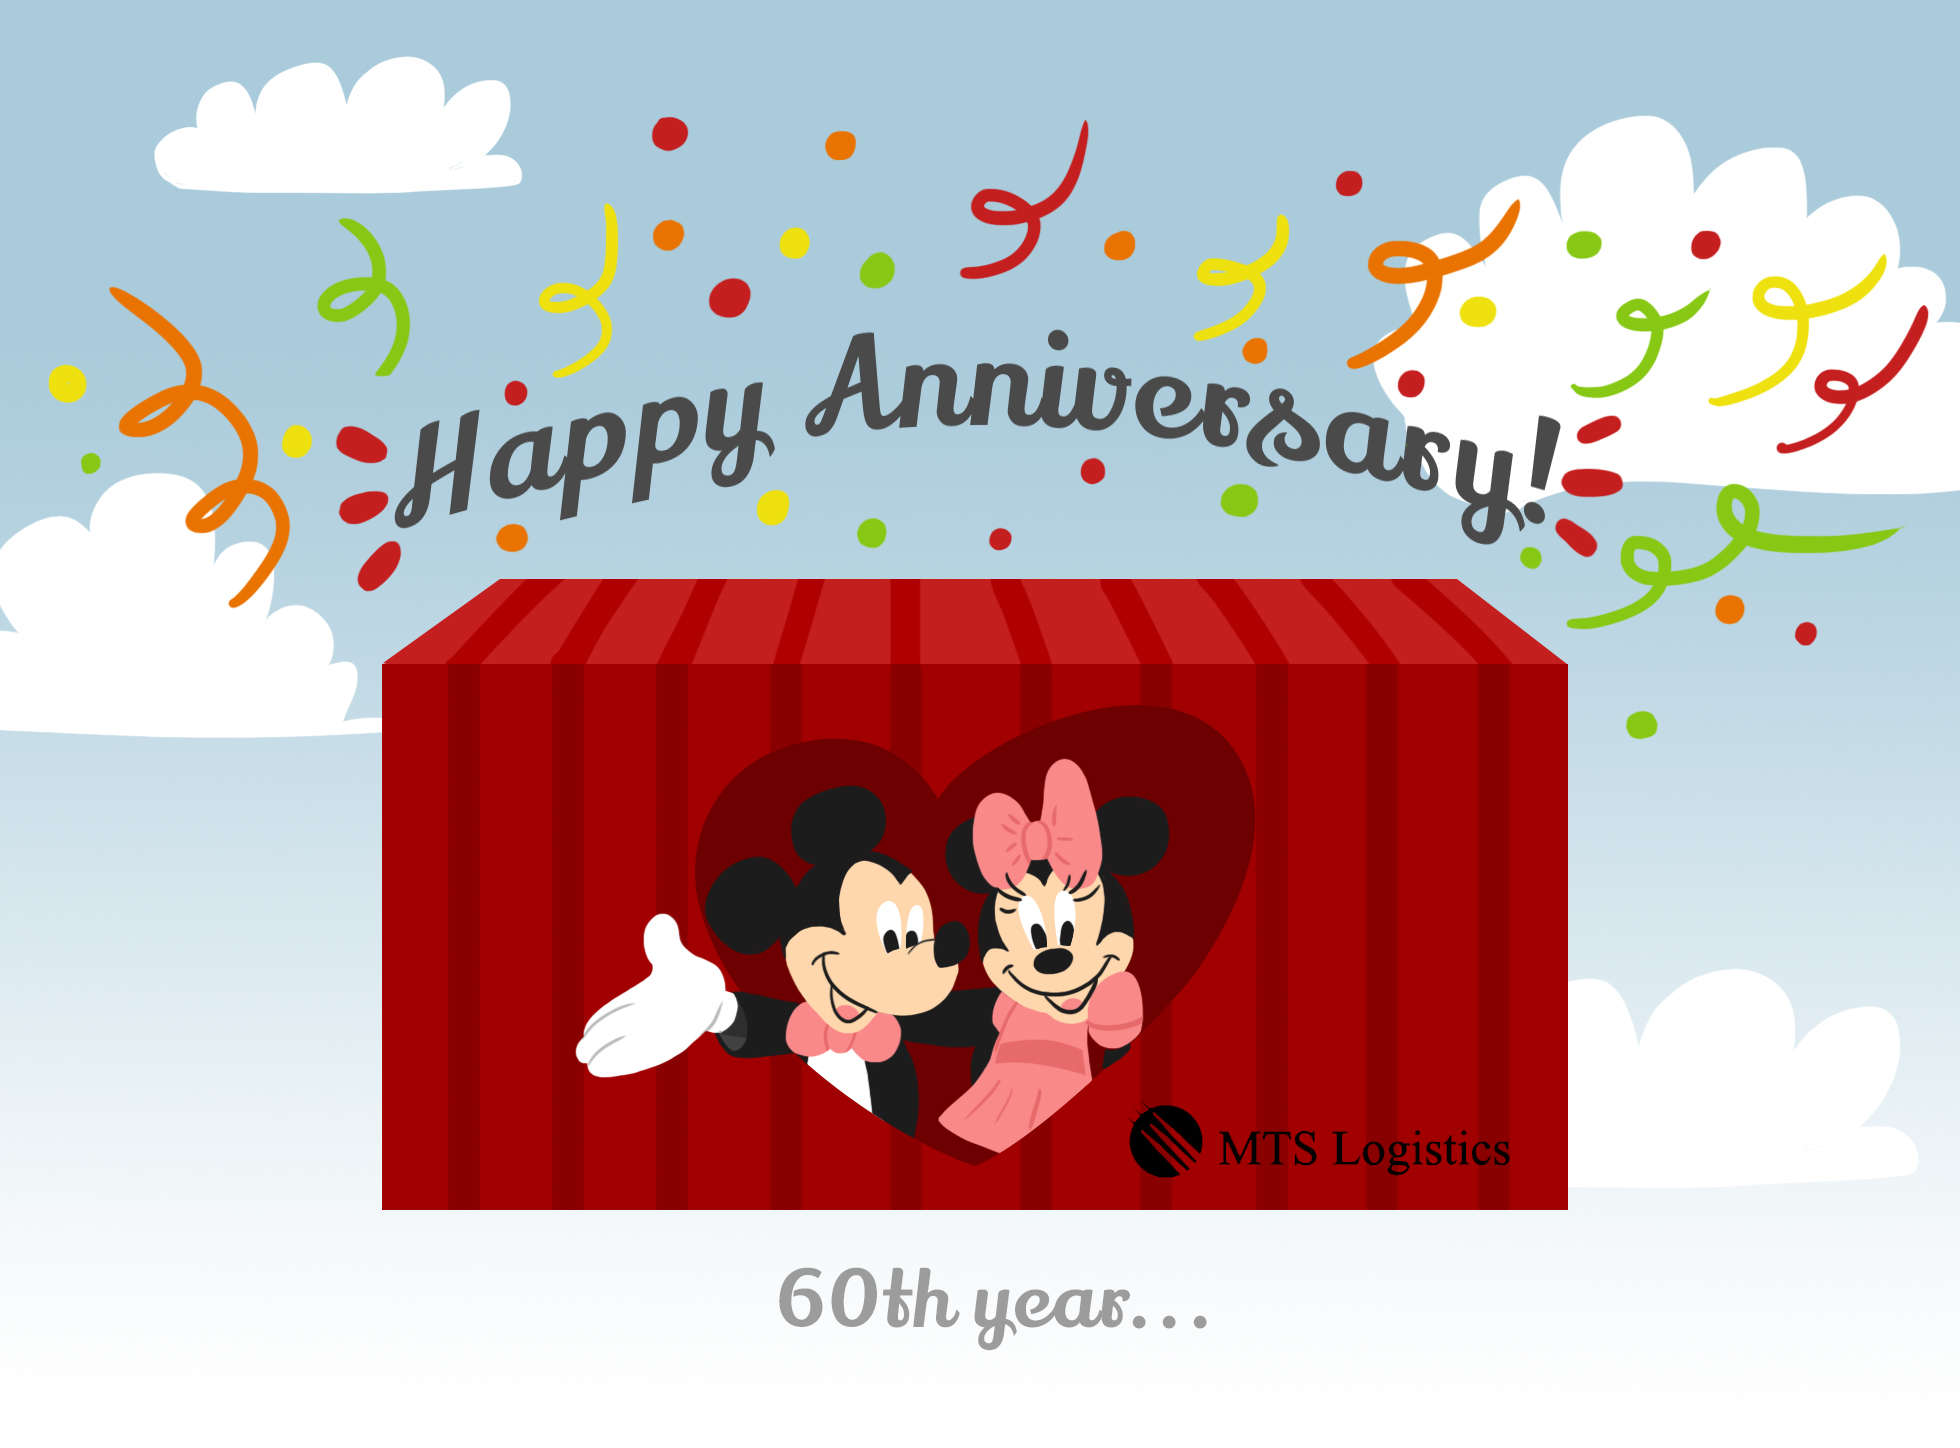 We Ship It! (Happy Anniversary Disneyland!)